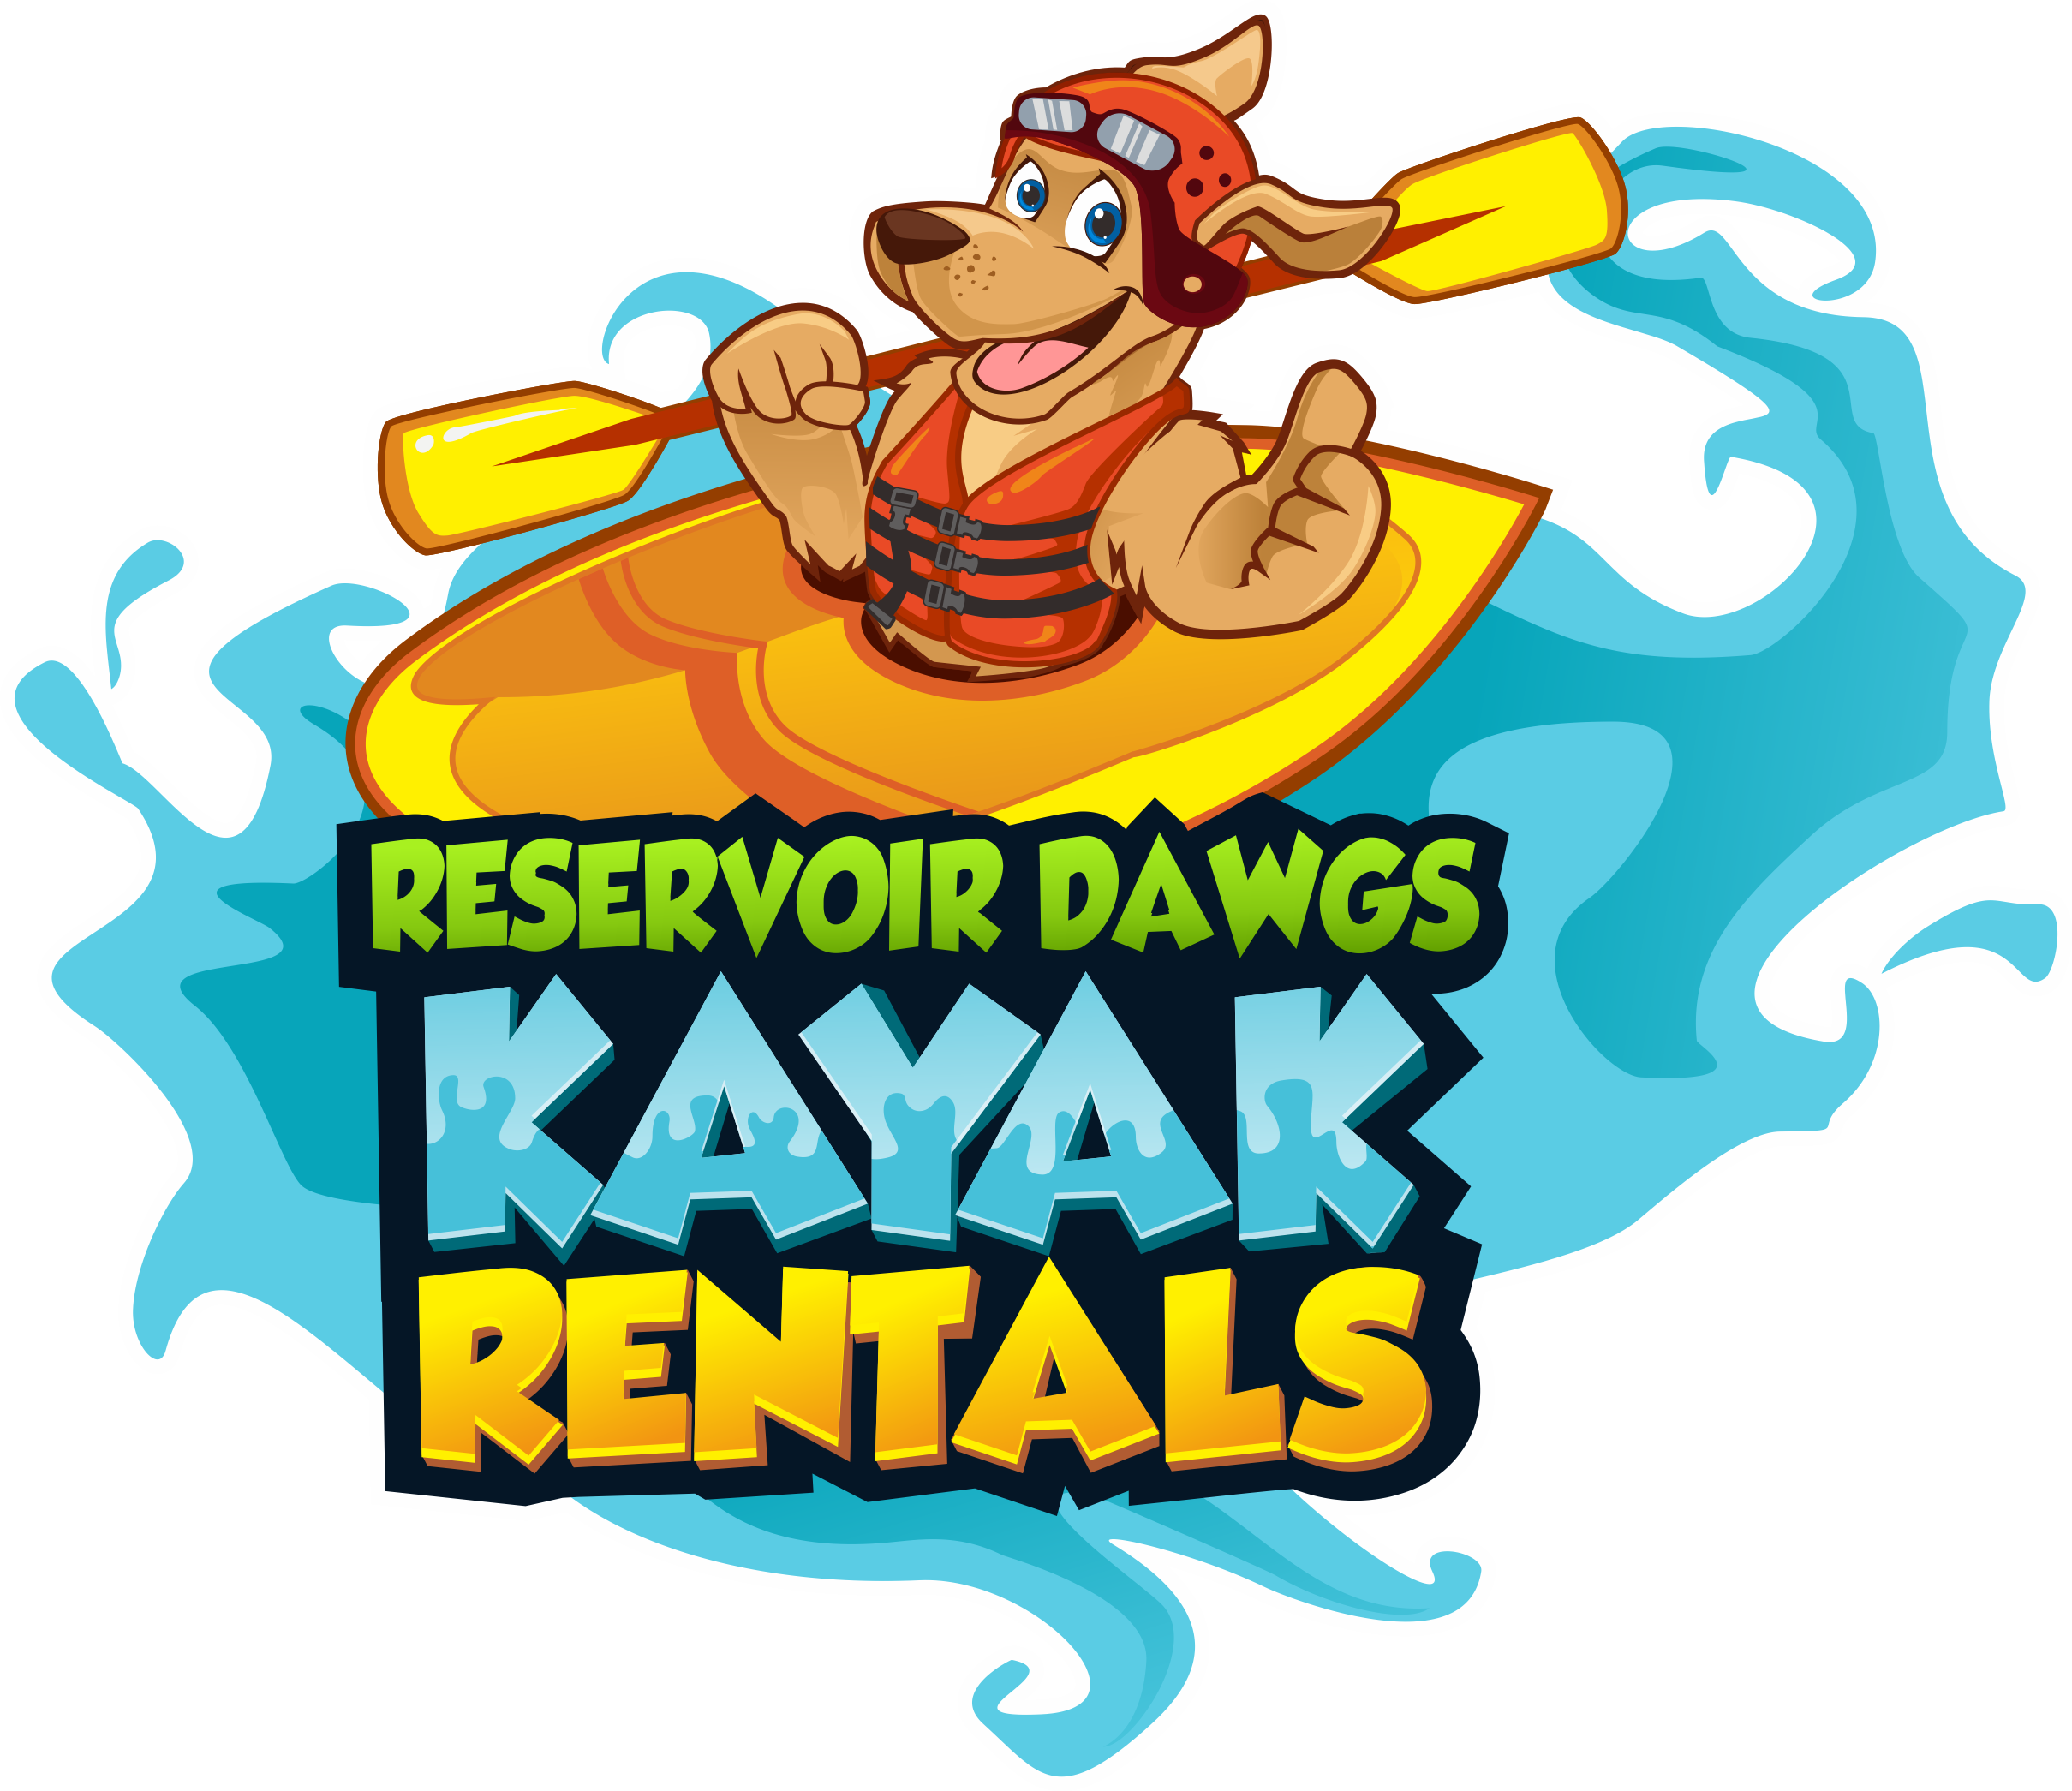 I need a bold eye catching sign that you can't miss for Reservoir Dawgs kayak rentals